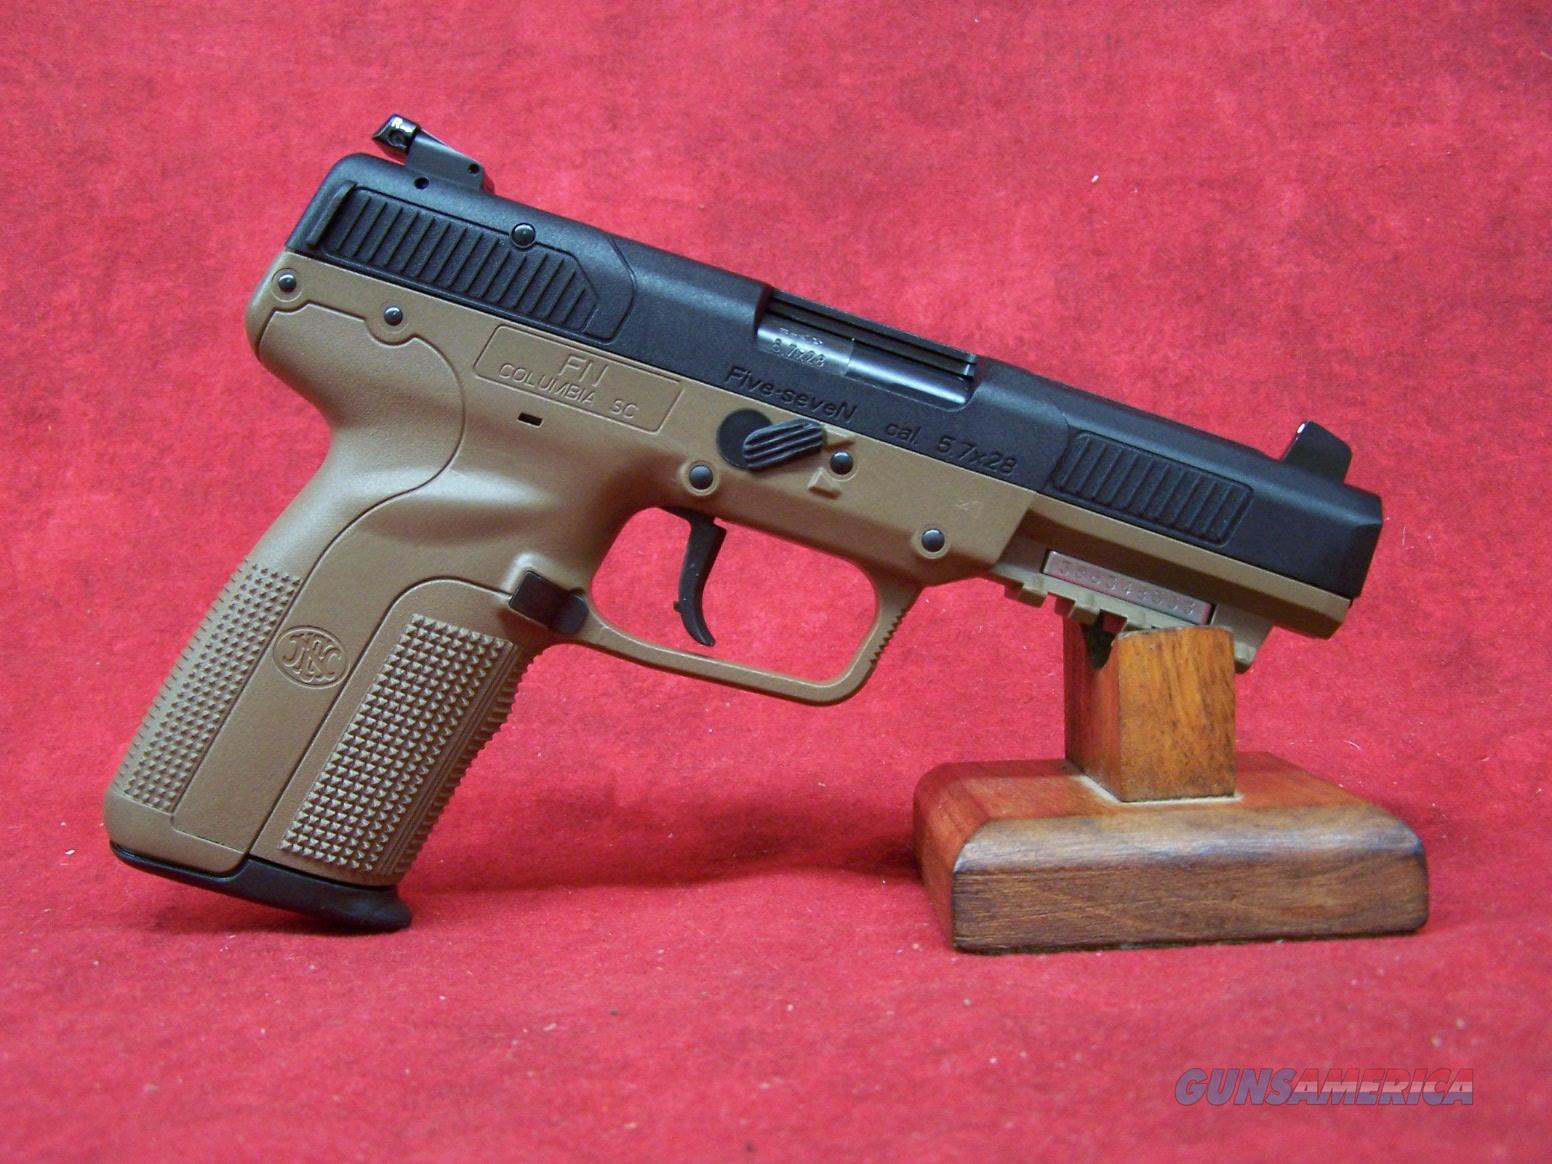 """FNH Five-Seven 5.7 x 28mm FDE 4 3/4"""" adjustable sights 3-20 round mags (3868929350)  Guns > Pistols > FNH - Fabrique Nationale (FN) Pistols > FiveSeven"""